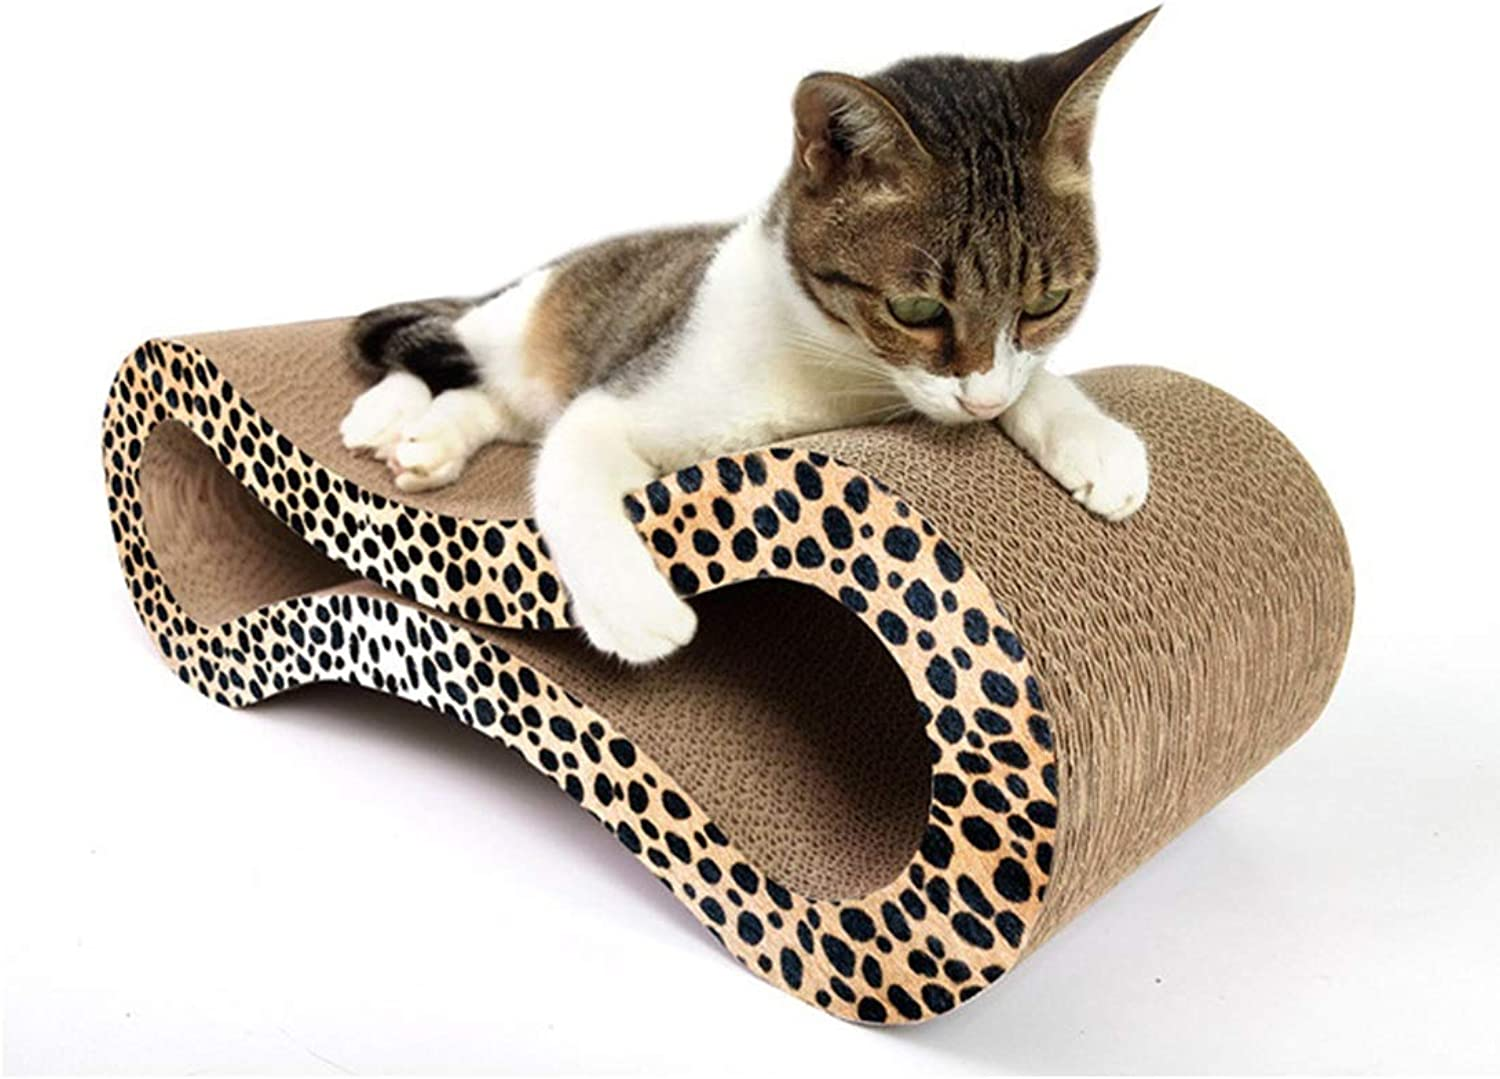 Hyue Corrugated Paper Cat Scratch Board 8Shaped Cat Litter Claw Toy Cat Pet Supplies Pet Toy Scratches (color   Leopard 8 Figure, Size   56X21.5X17.8CM)